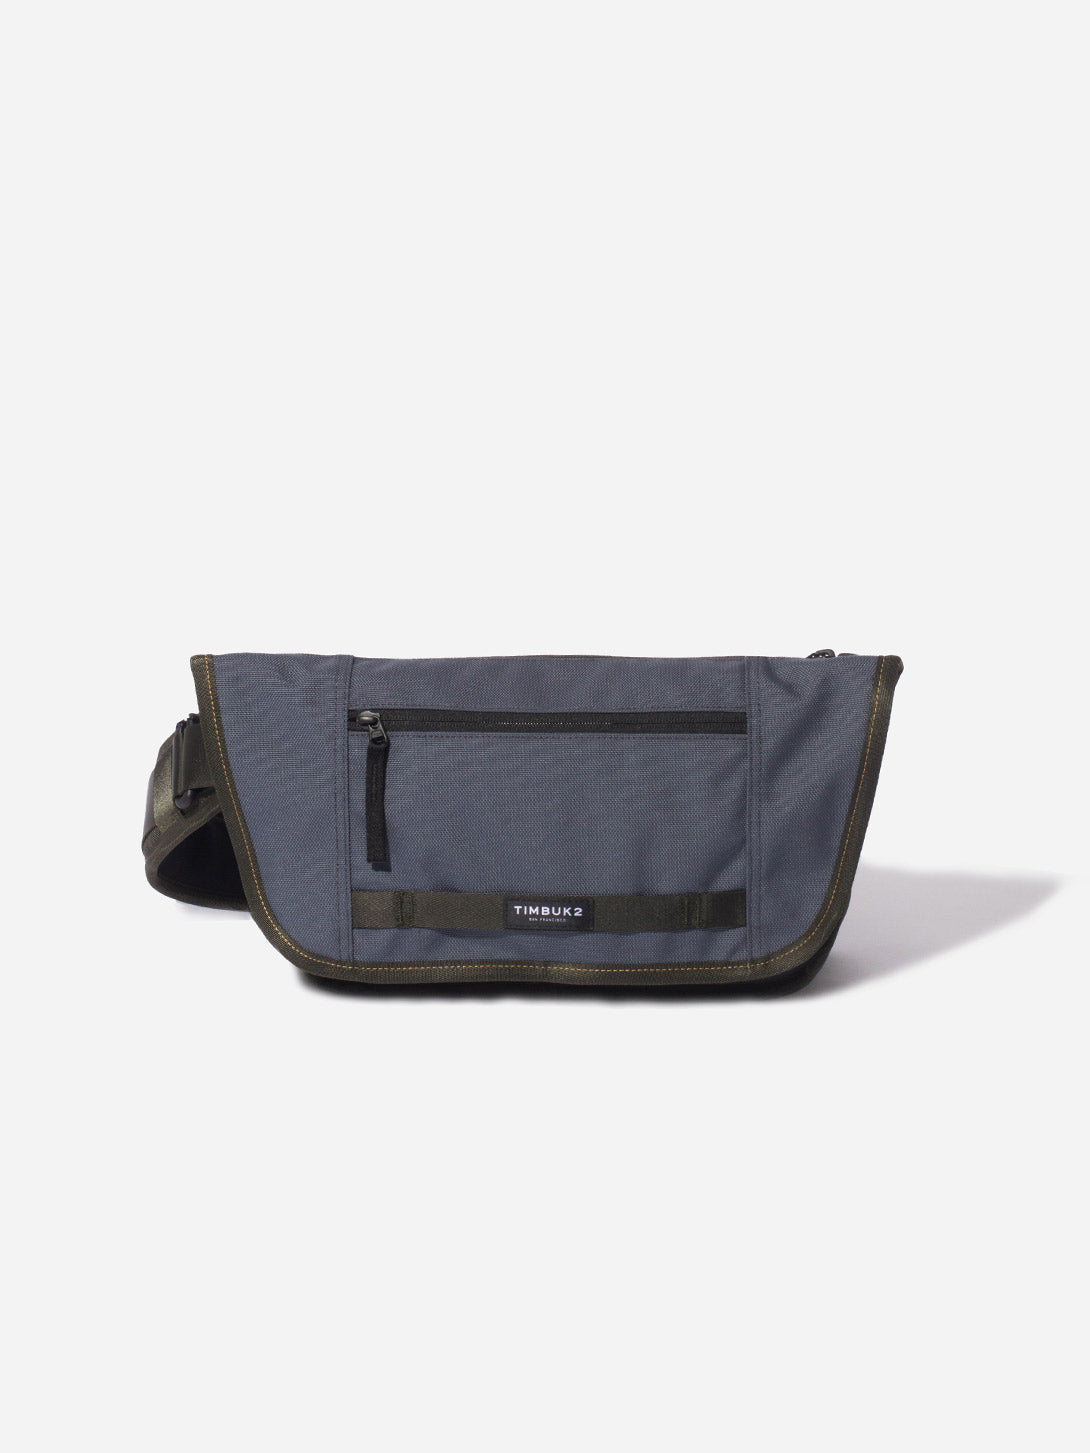 CATAPULT SLING Outpost TIMBUK2